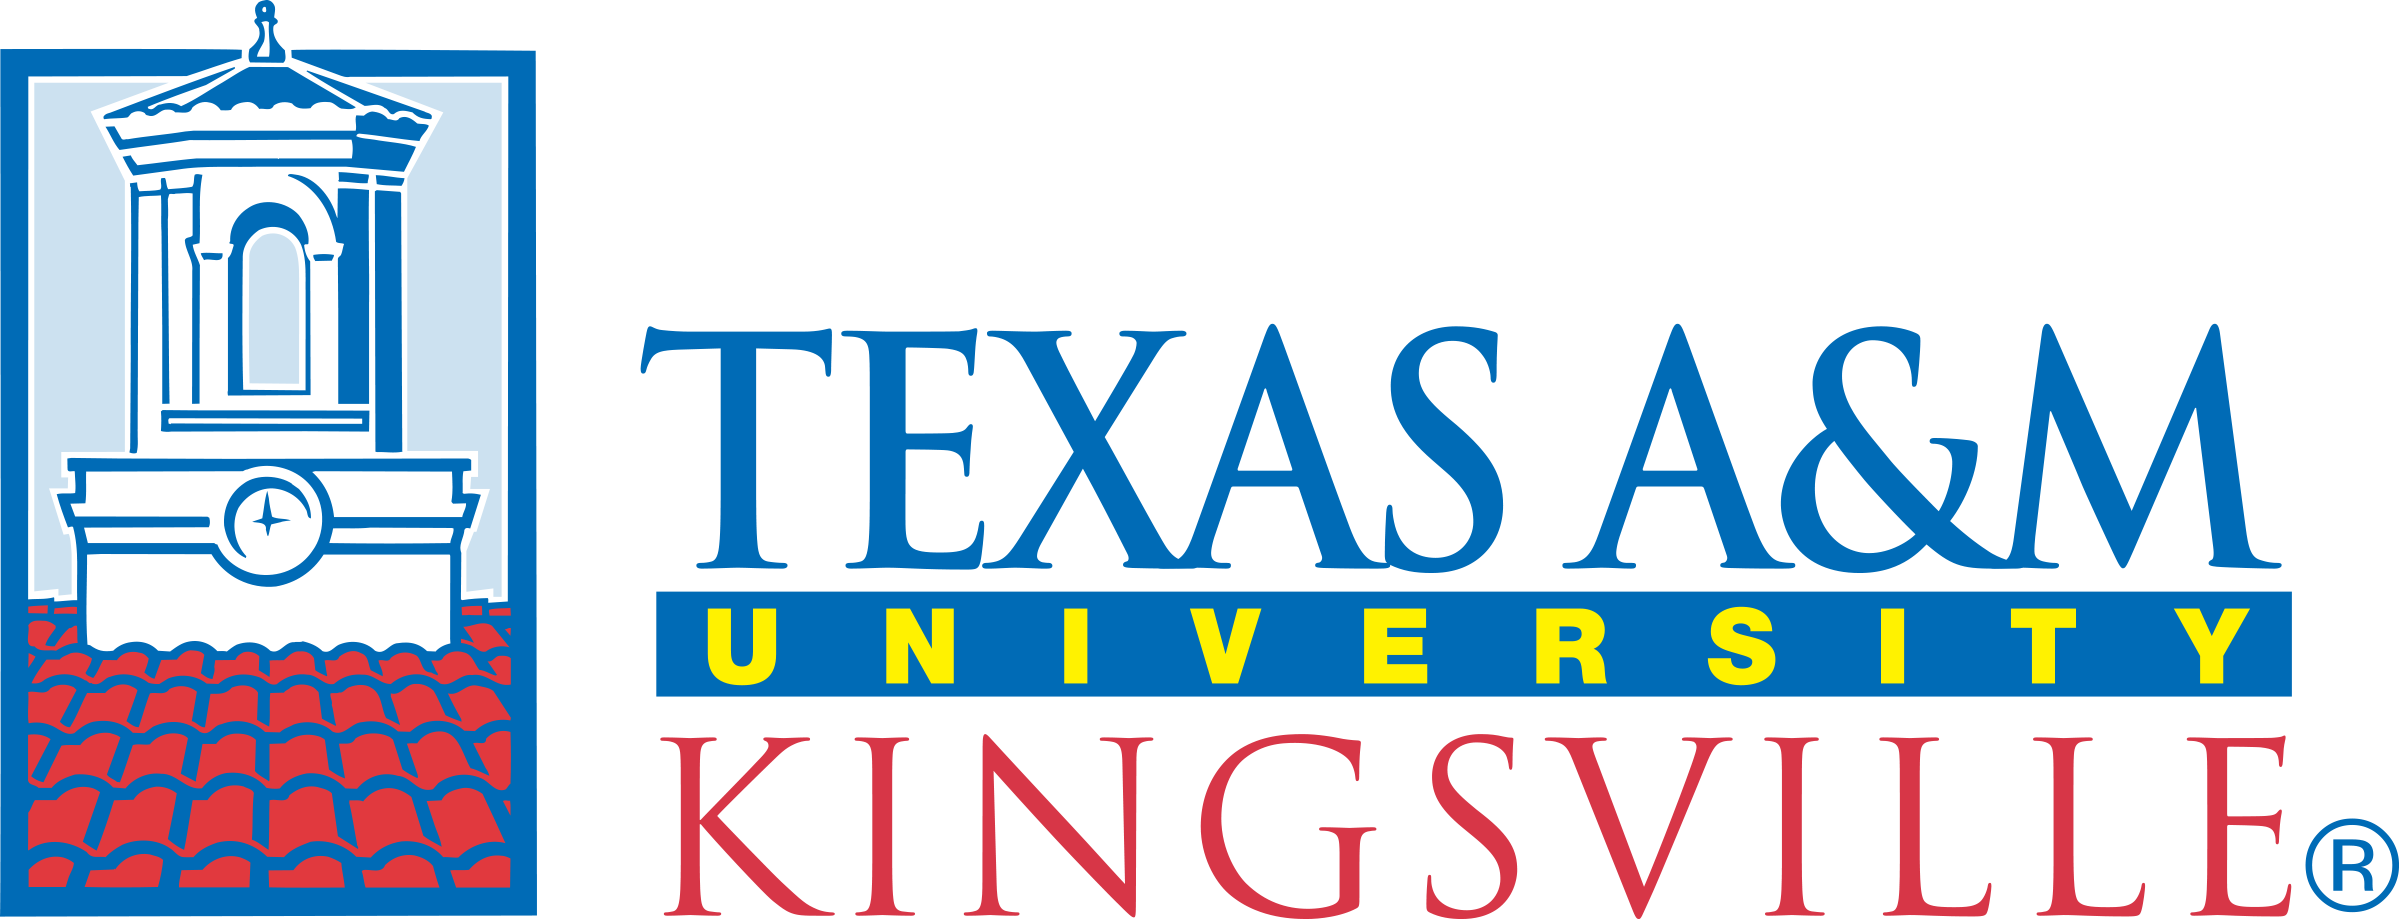 Texas A&M University-Kingsville, Tower Logo